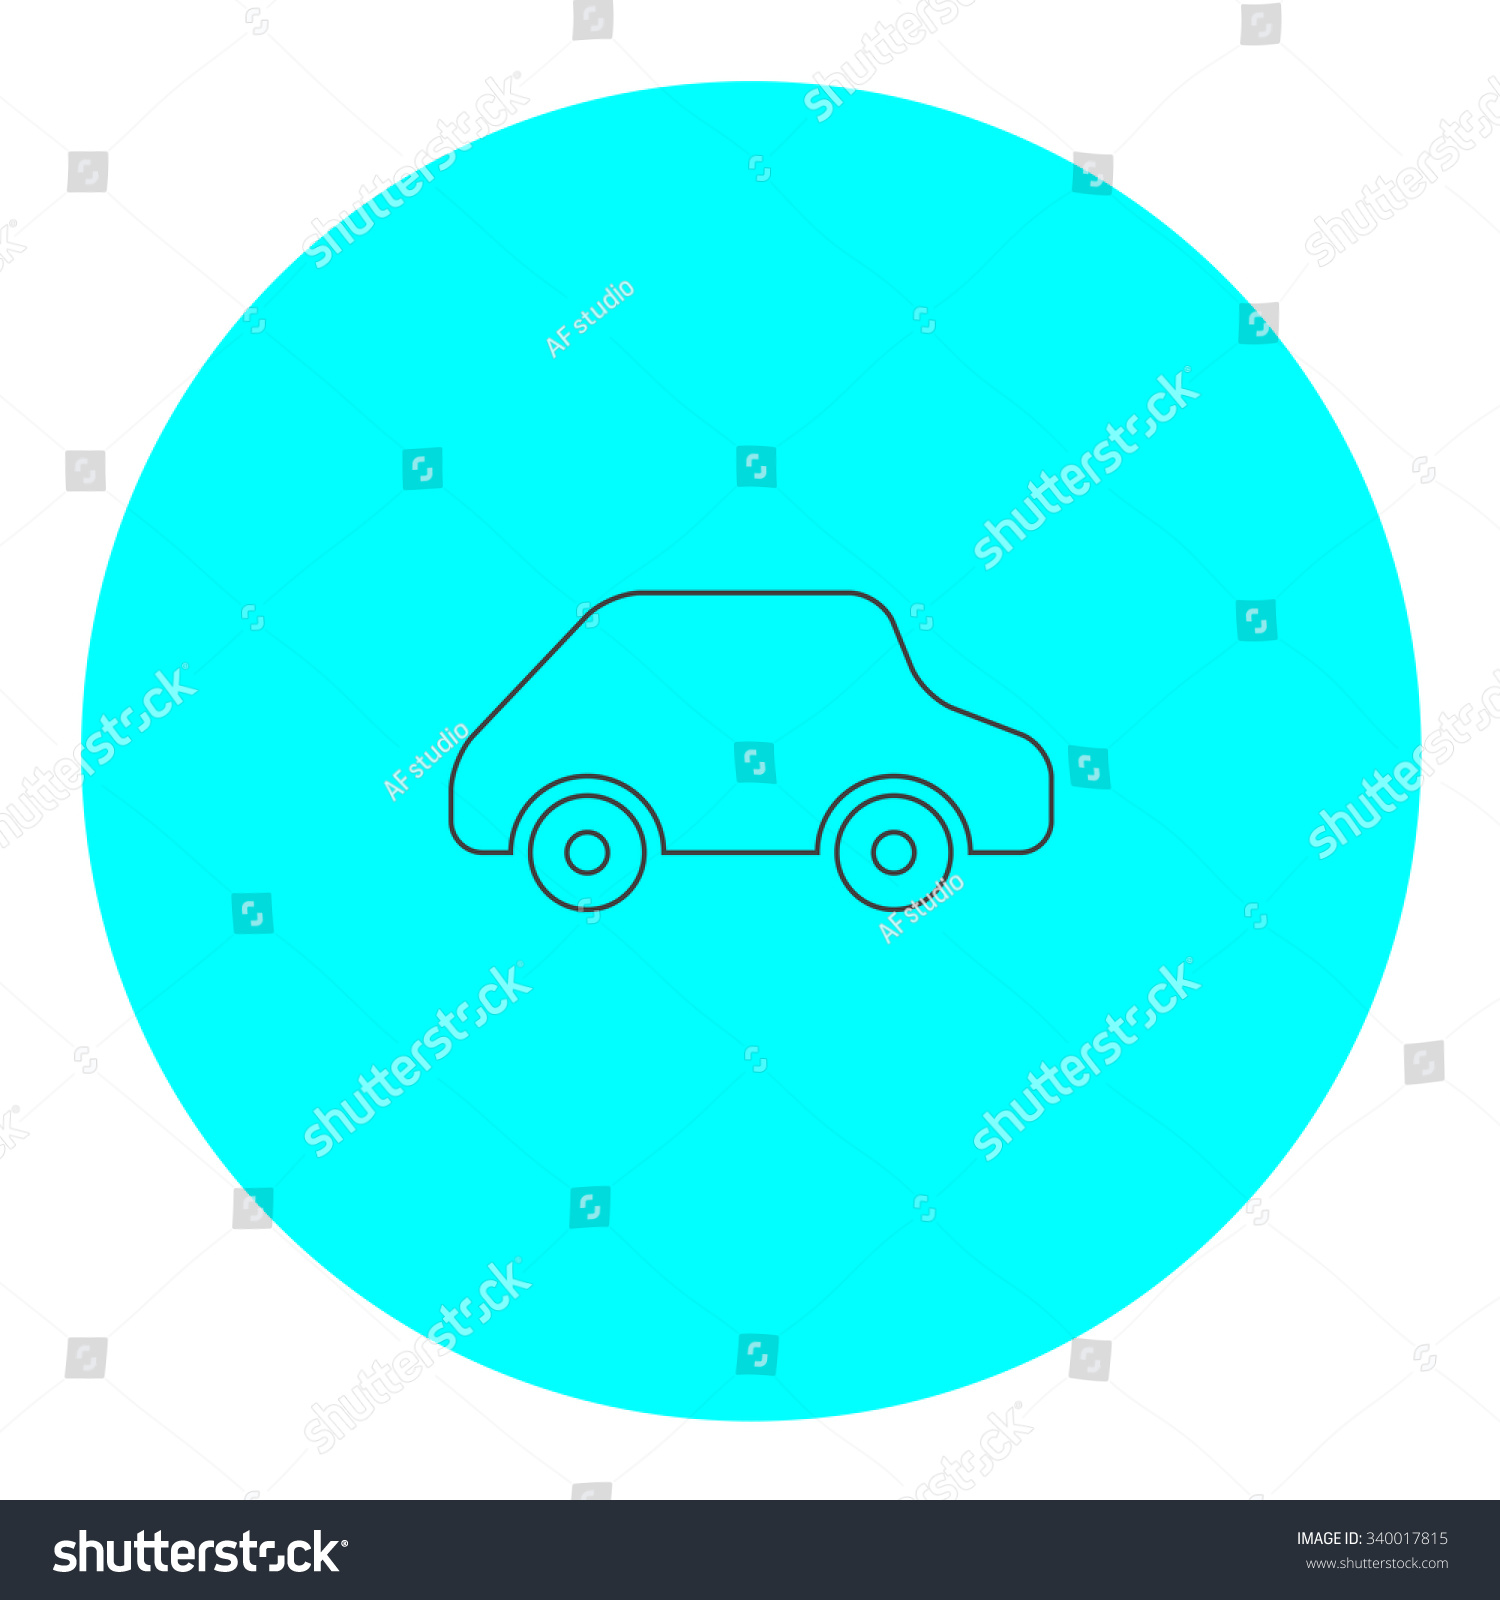 Processing Invoices For Payment Pdf Download Simple Car Template  Rabitahnet Dell Invoice Excel with Neat Receipt Download Word Toy Car Logo Template Black Outline Stock Illustration  Invoice  Templates Proforma Invoice And Invoice Excel